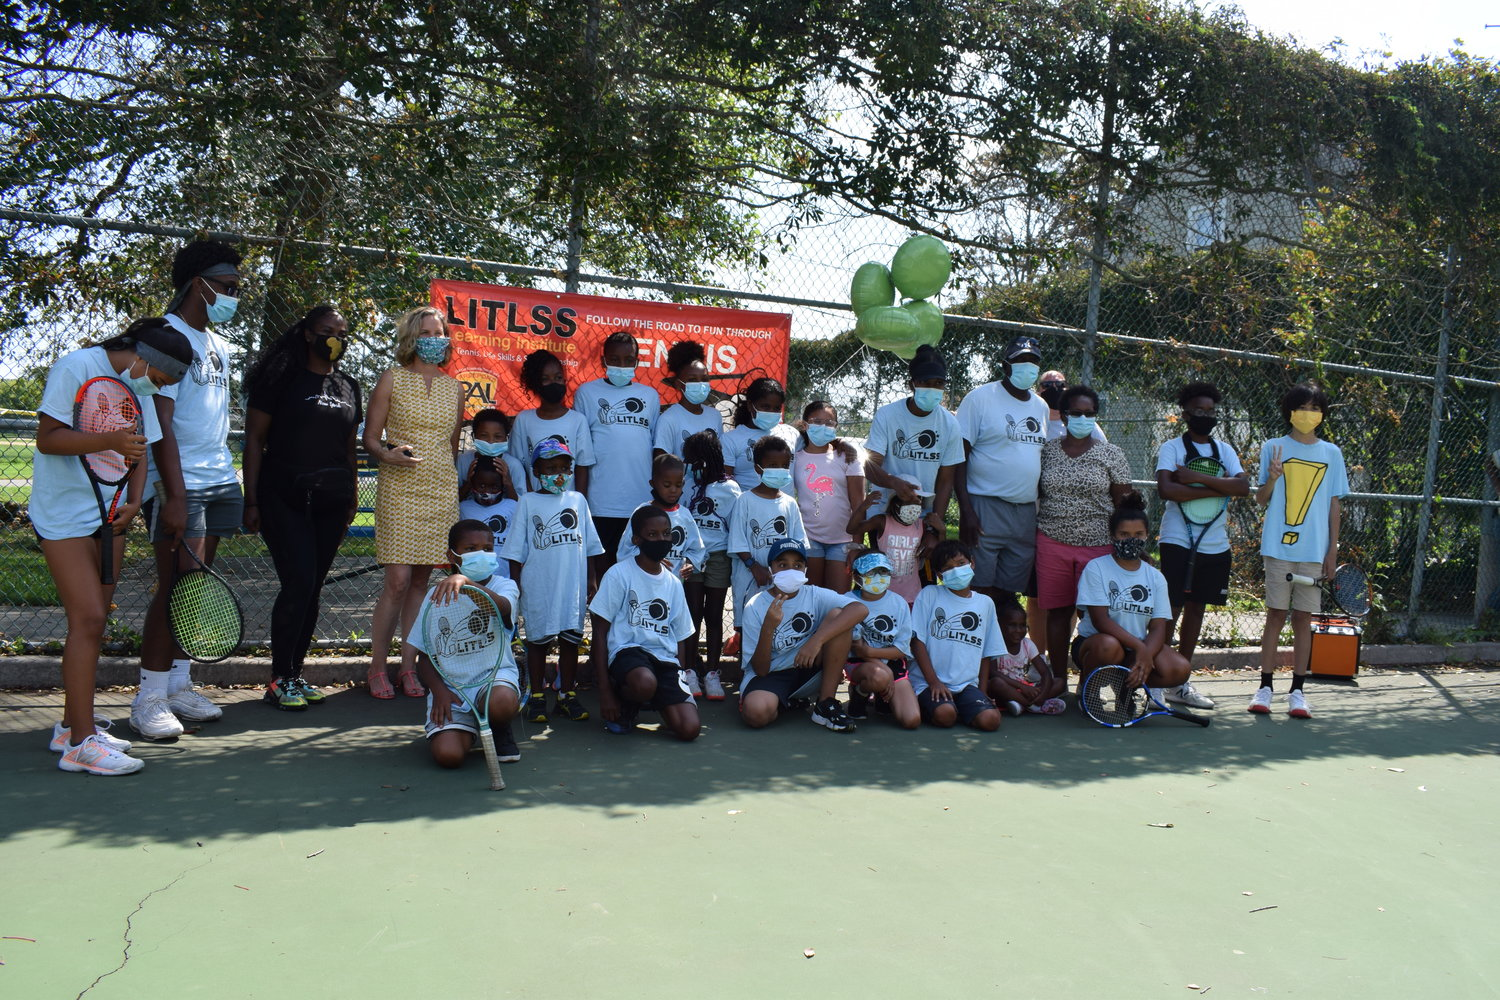 About 20 young people took part in the annual LITLSS tennis summer program with Burgess from July through August.